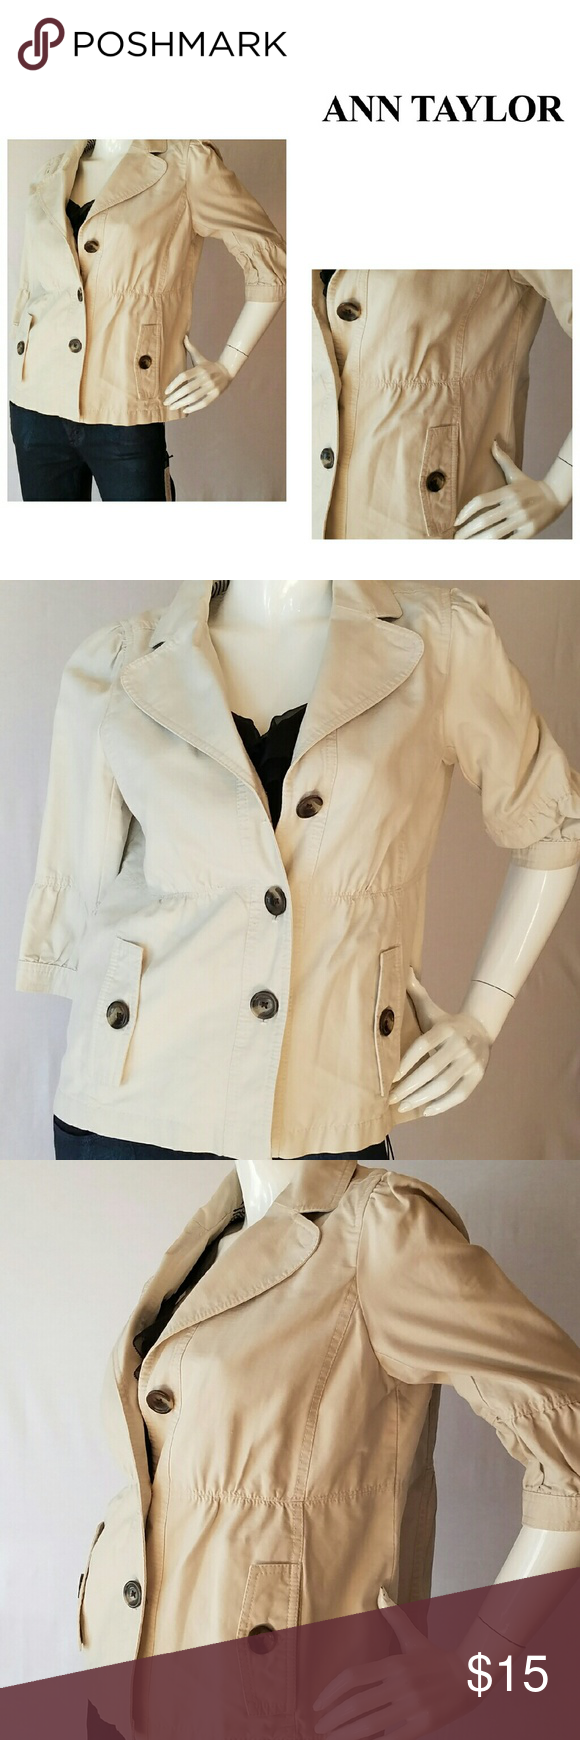 ANN TAYLOR Jacket Cute casual cotton Ann Taylor jacket with cropped sleeves and fit.  Tortoiseshell look accent buttons.  Perfect for cool summer nights over a tank or with shorts.  Excellent condition Ann Taylor Jackets & Coats Blazers